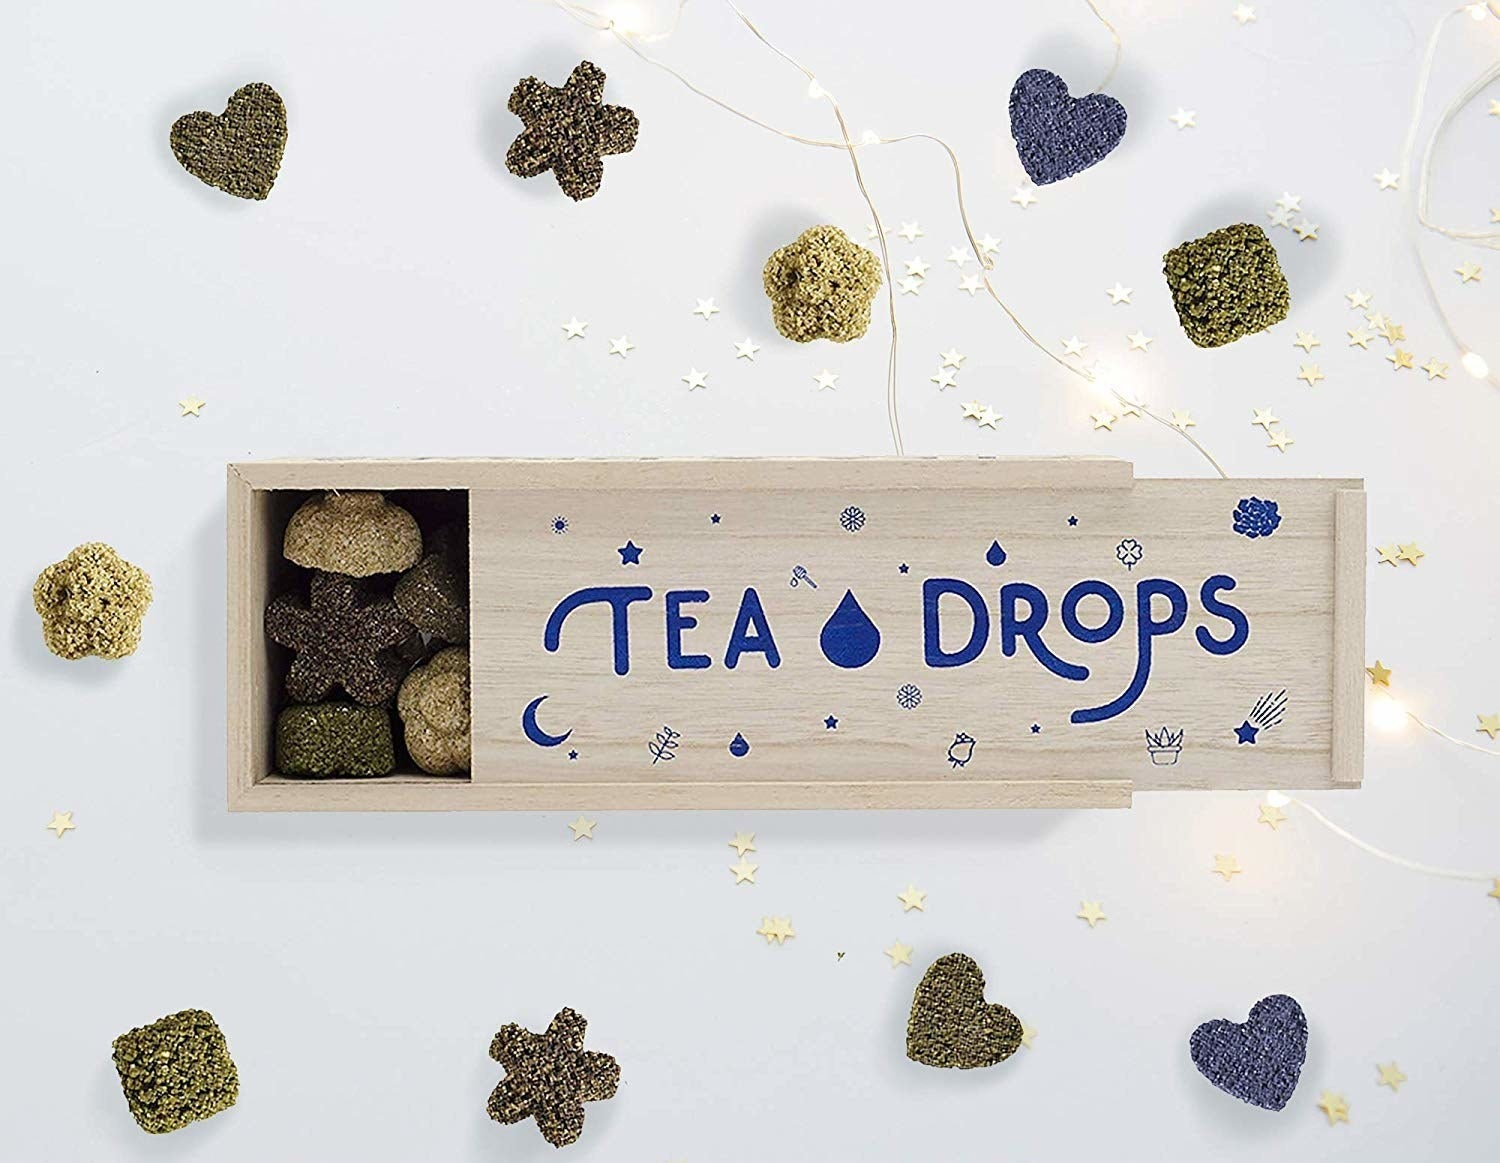 An open box of Tea Drops.